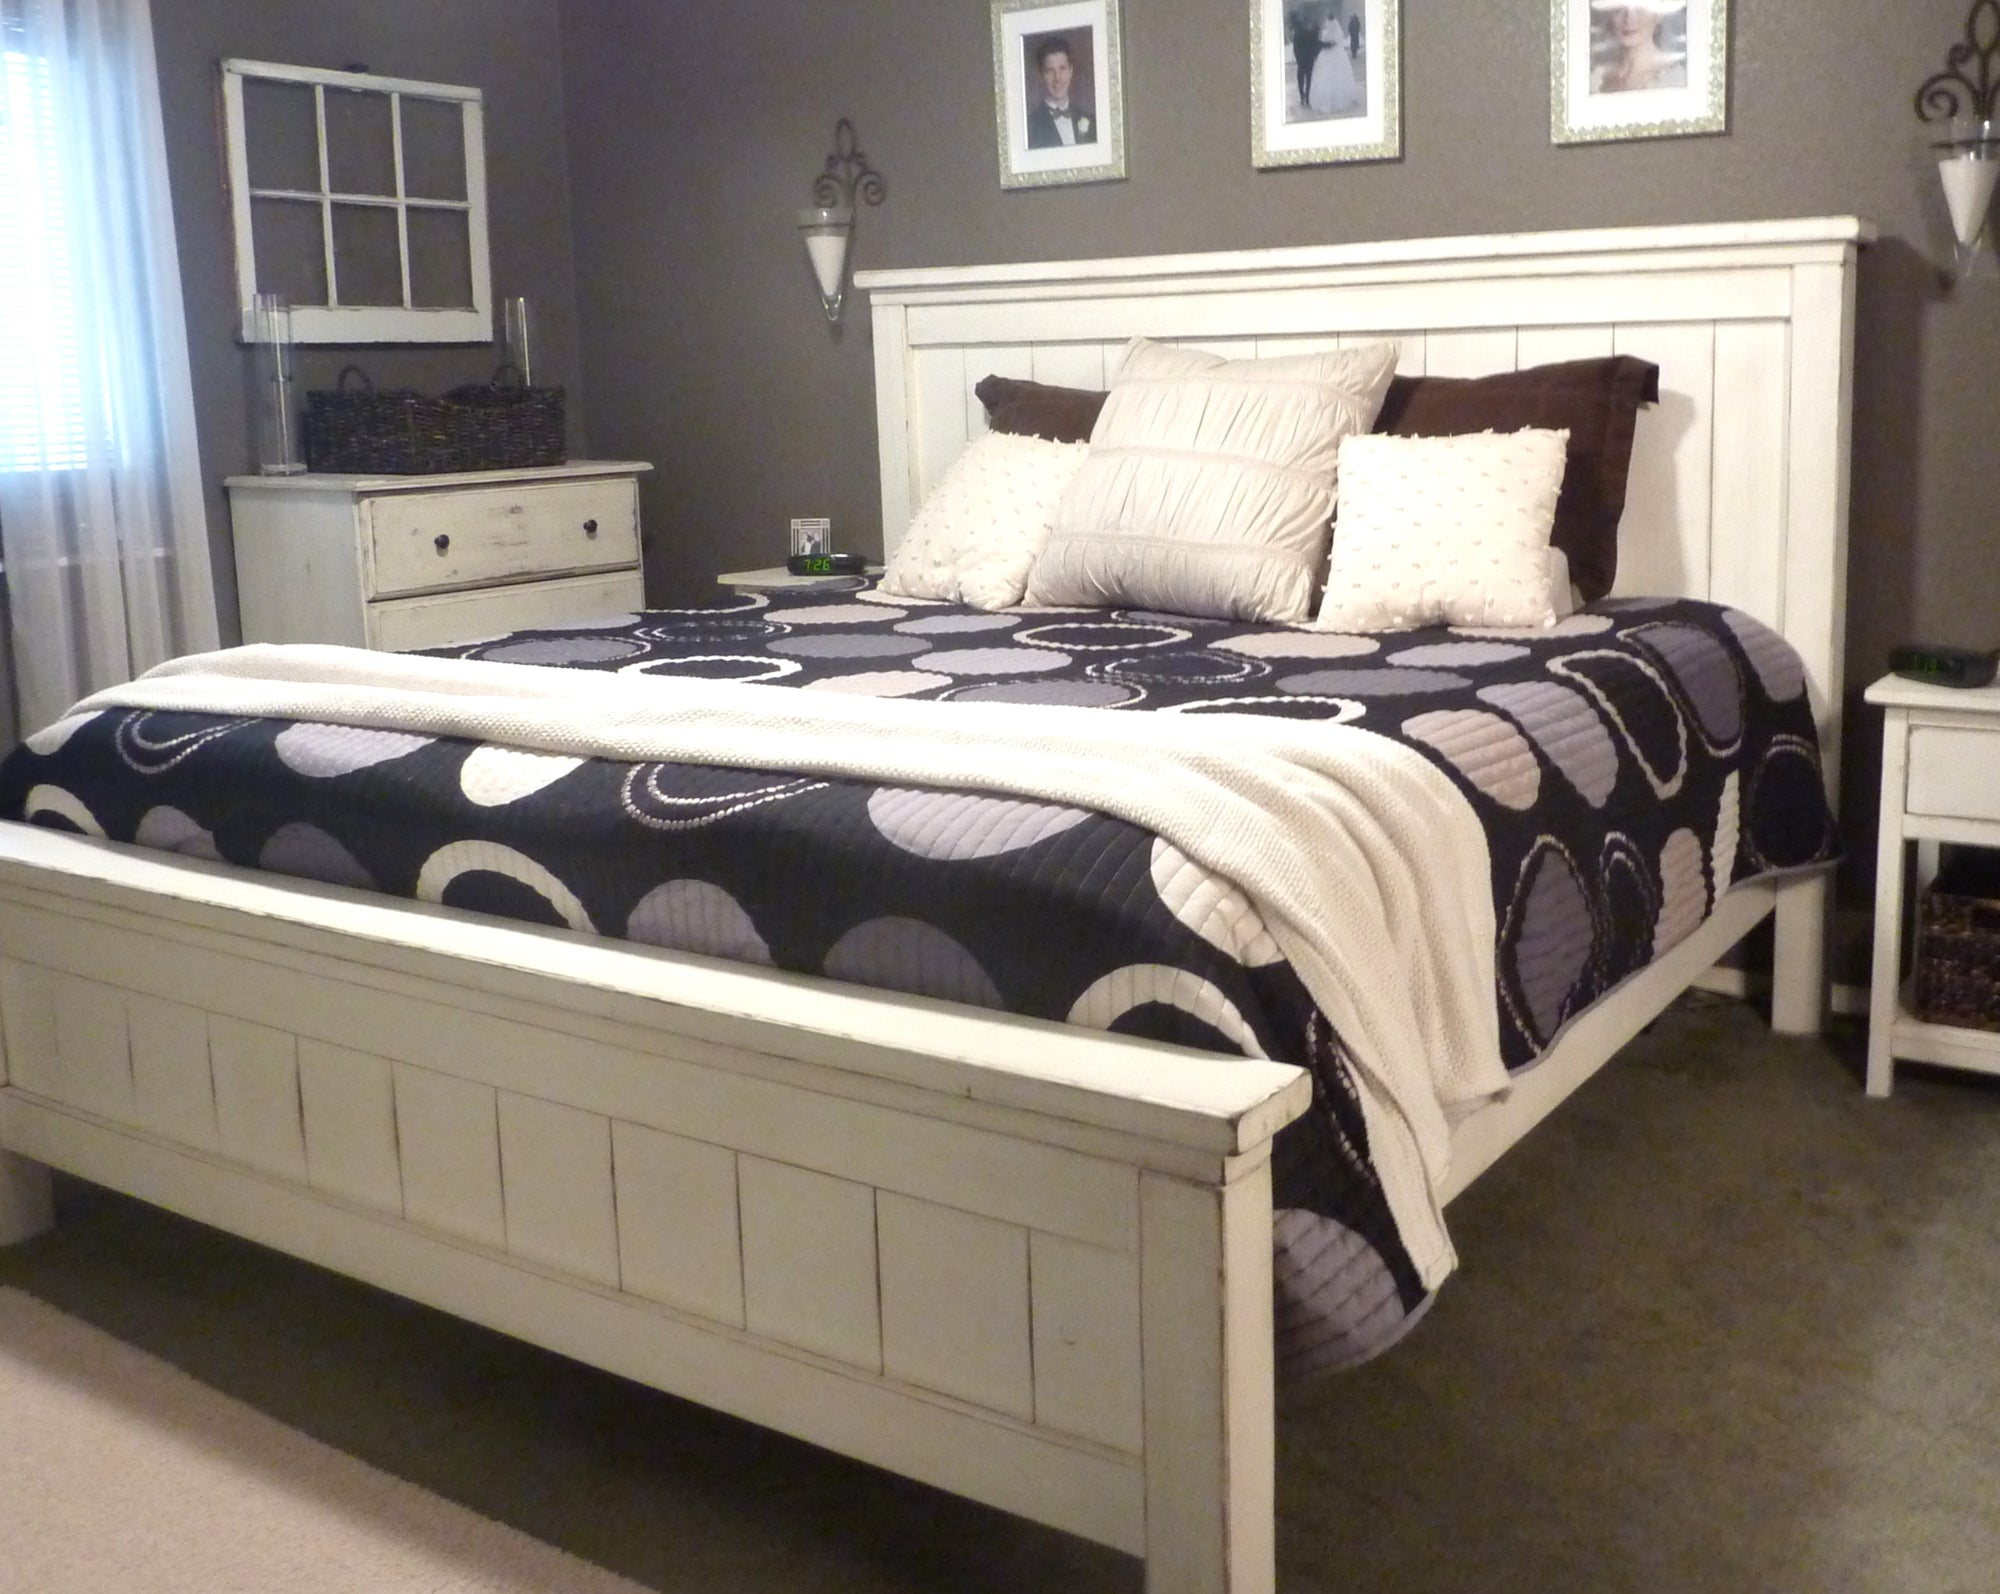 Shop hawkinswoodshop.com for discounted solid wood & metal modern, traditional, contemporary, custom & farmhouse furniture including our Made-to-Order Custom Rustic Farmhouse Beds - King Size. Ask about our free nationwide freight delivery or assembly services today.